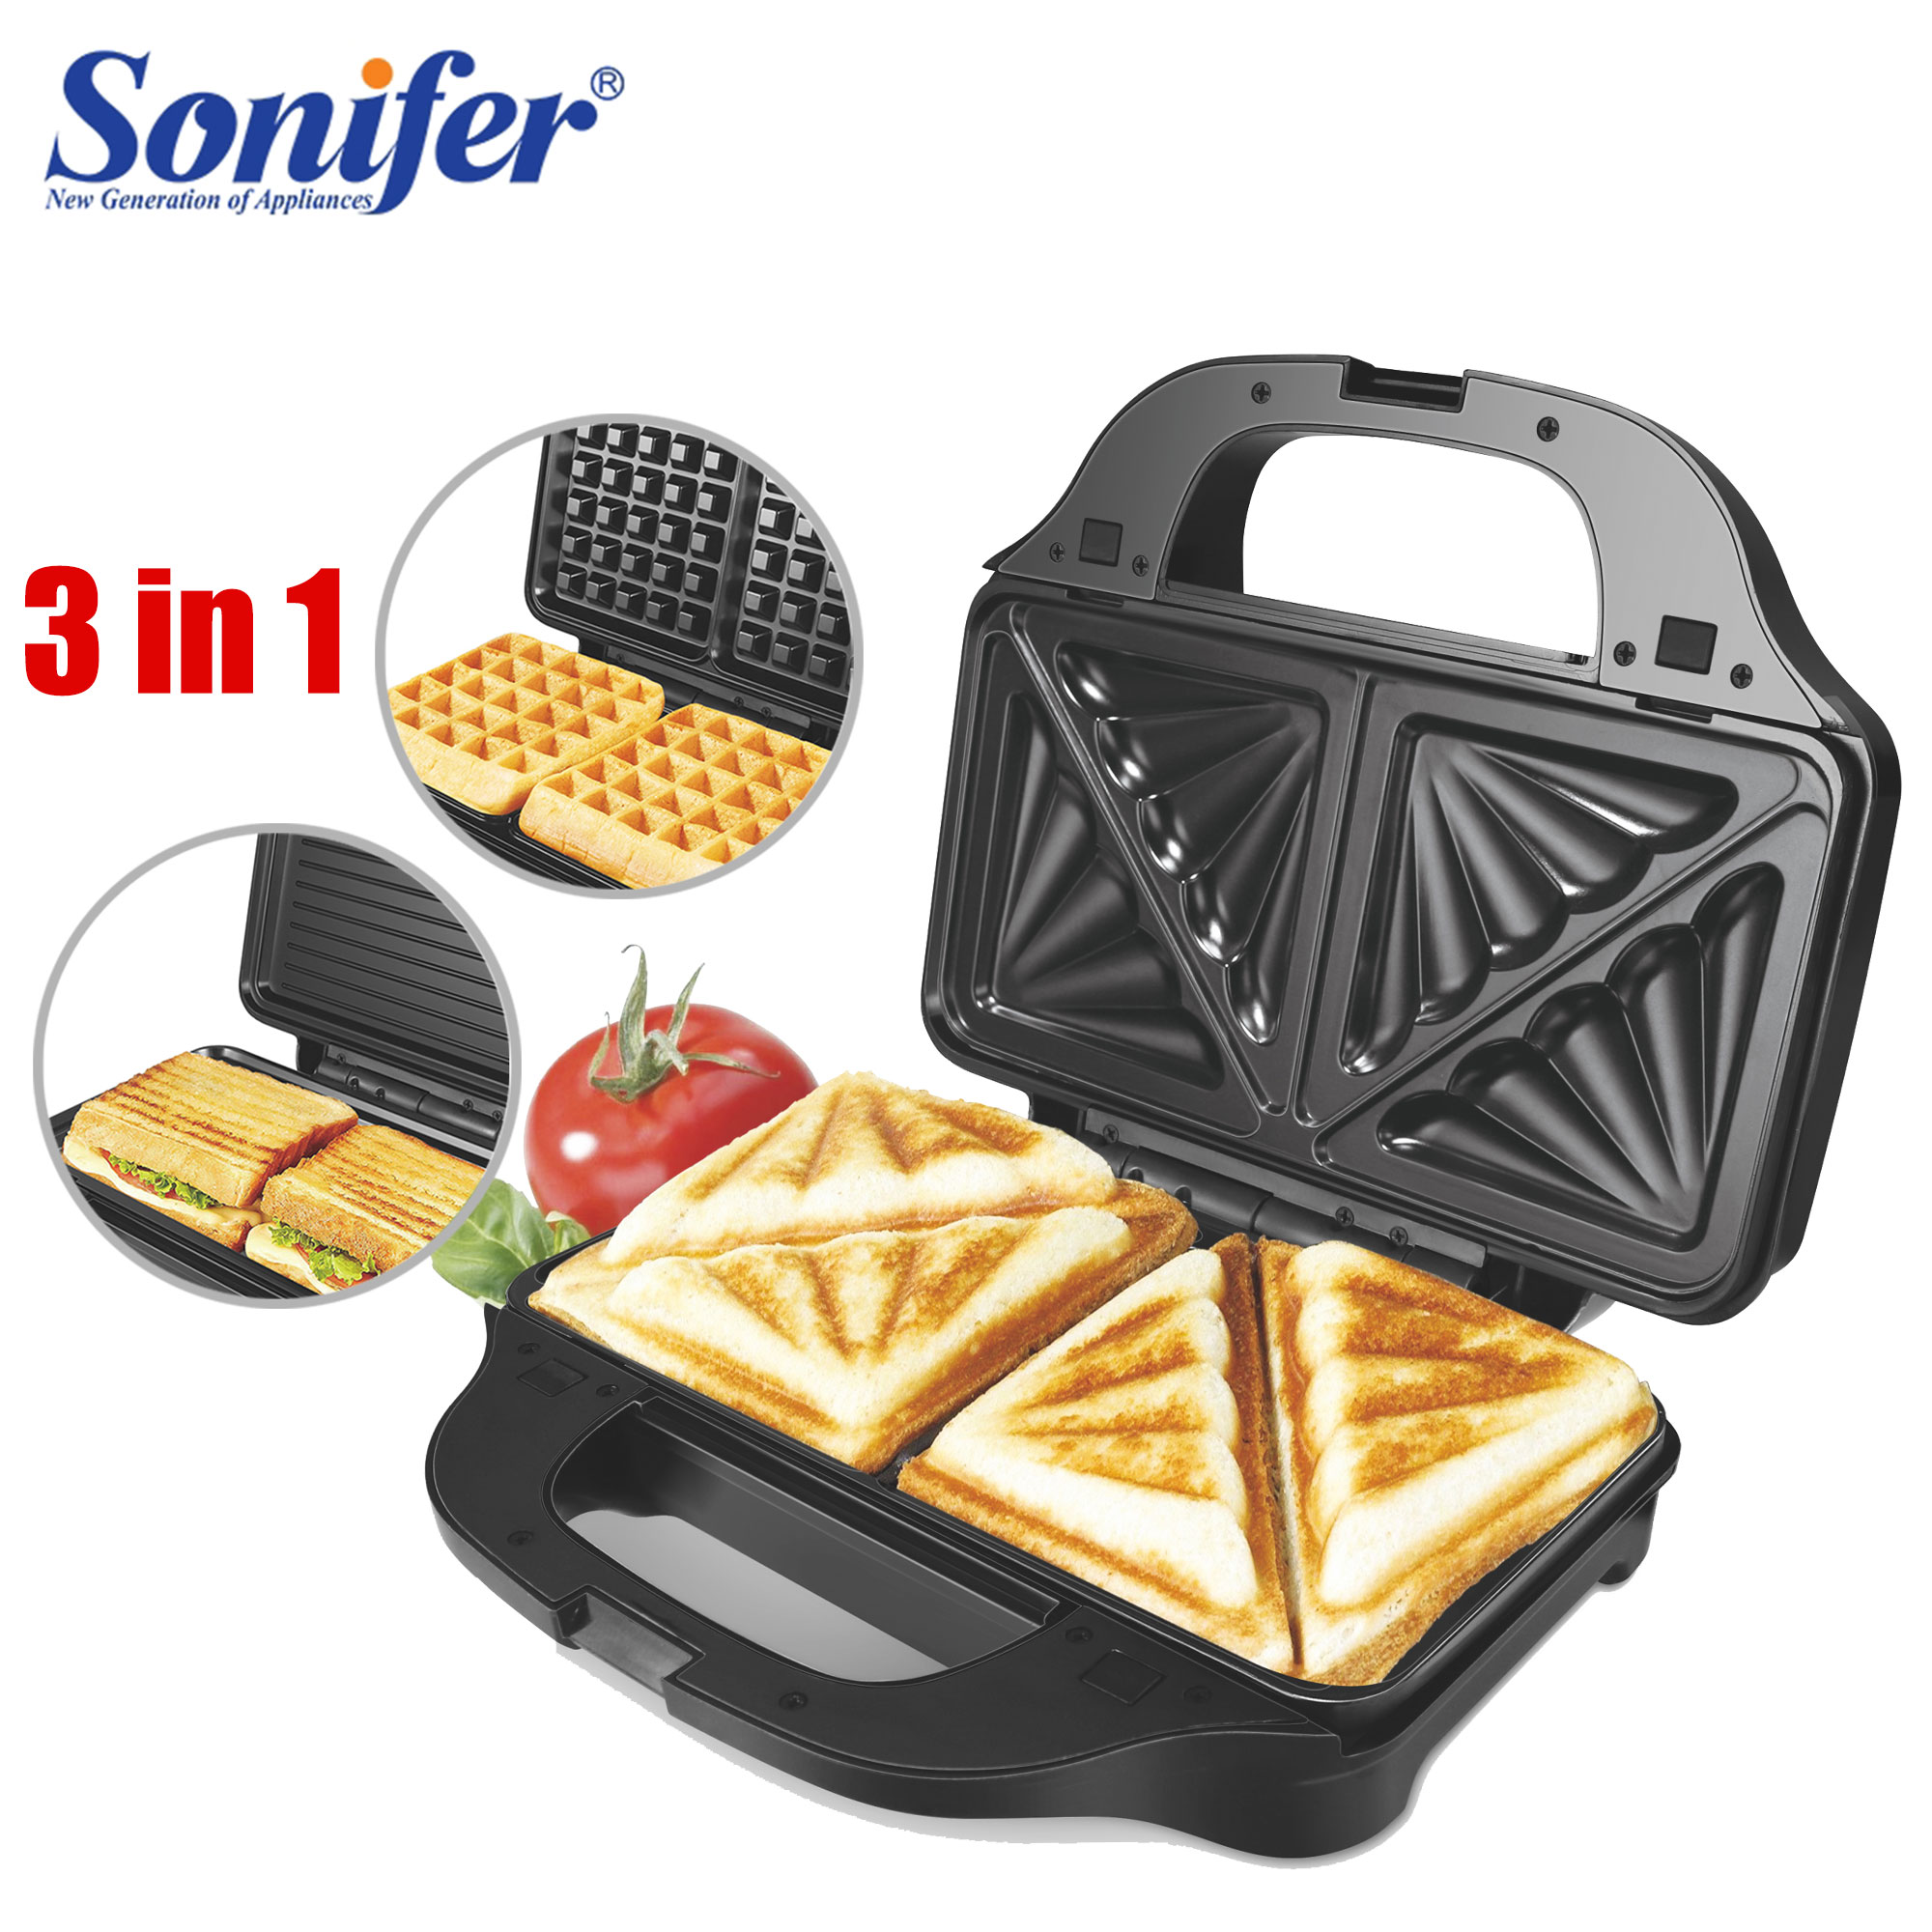 3 In 1 Electric Waffle Maker Iron Sandwich Machine Non-Stick Pan Bubble Egg Cake Oven Household Breakfast Waffle Machine Sonifer